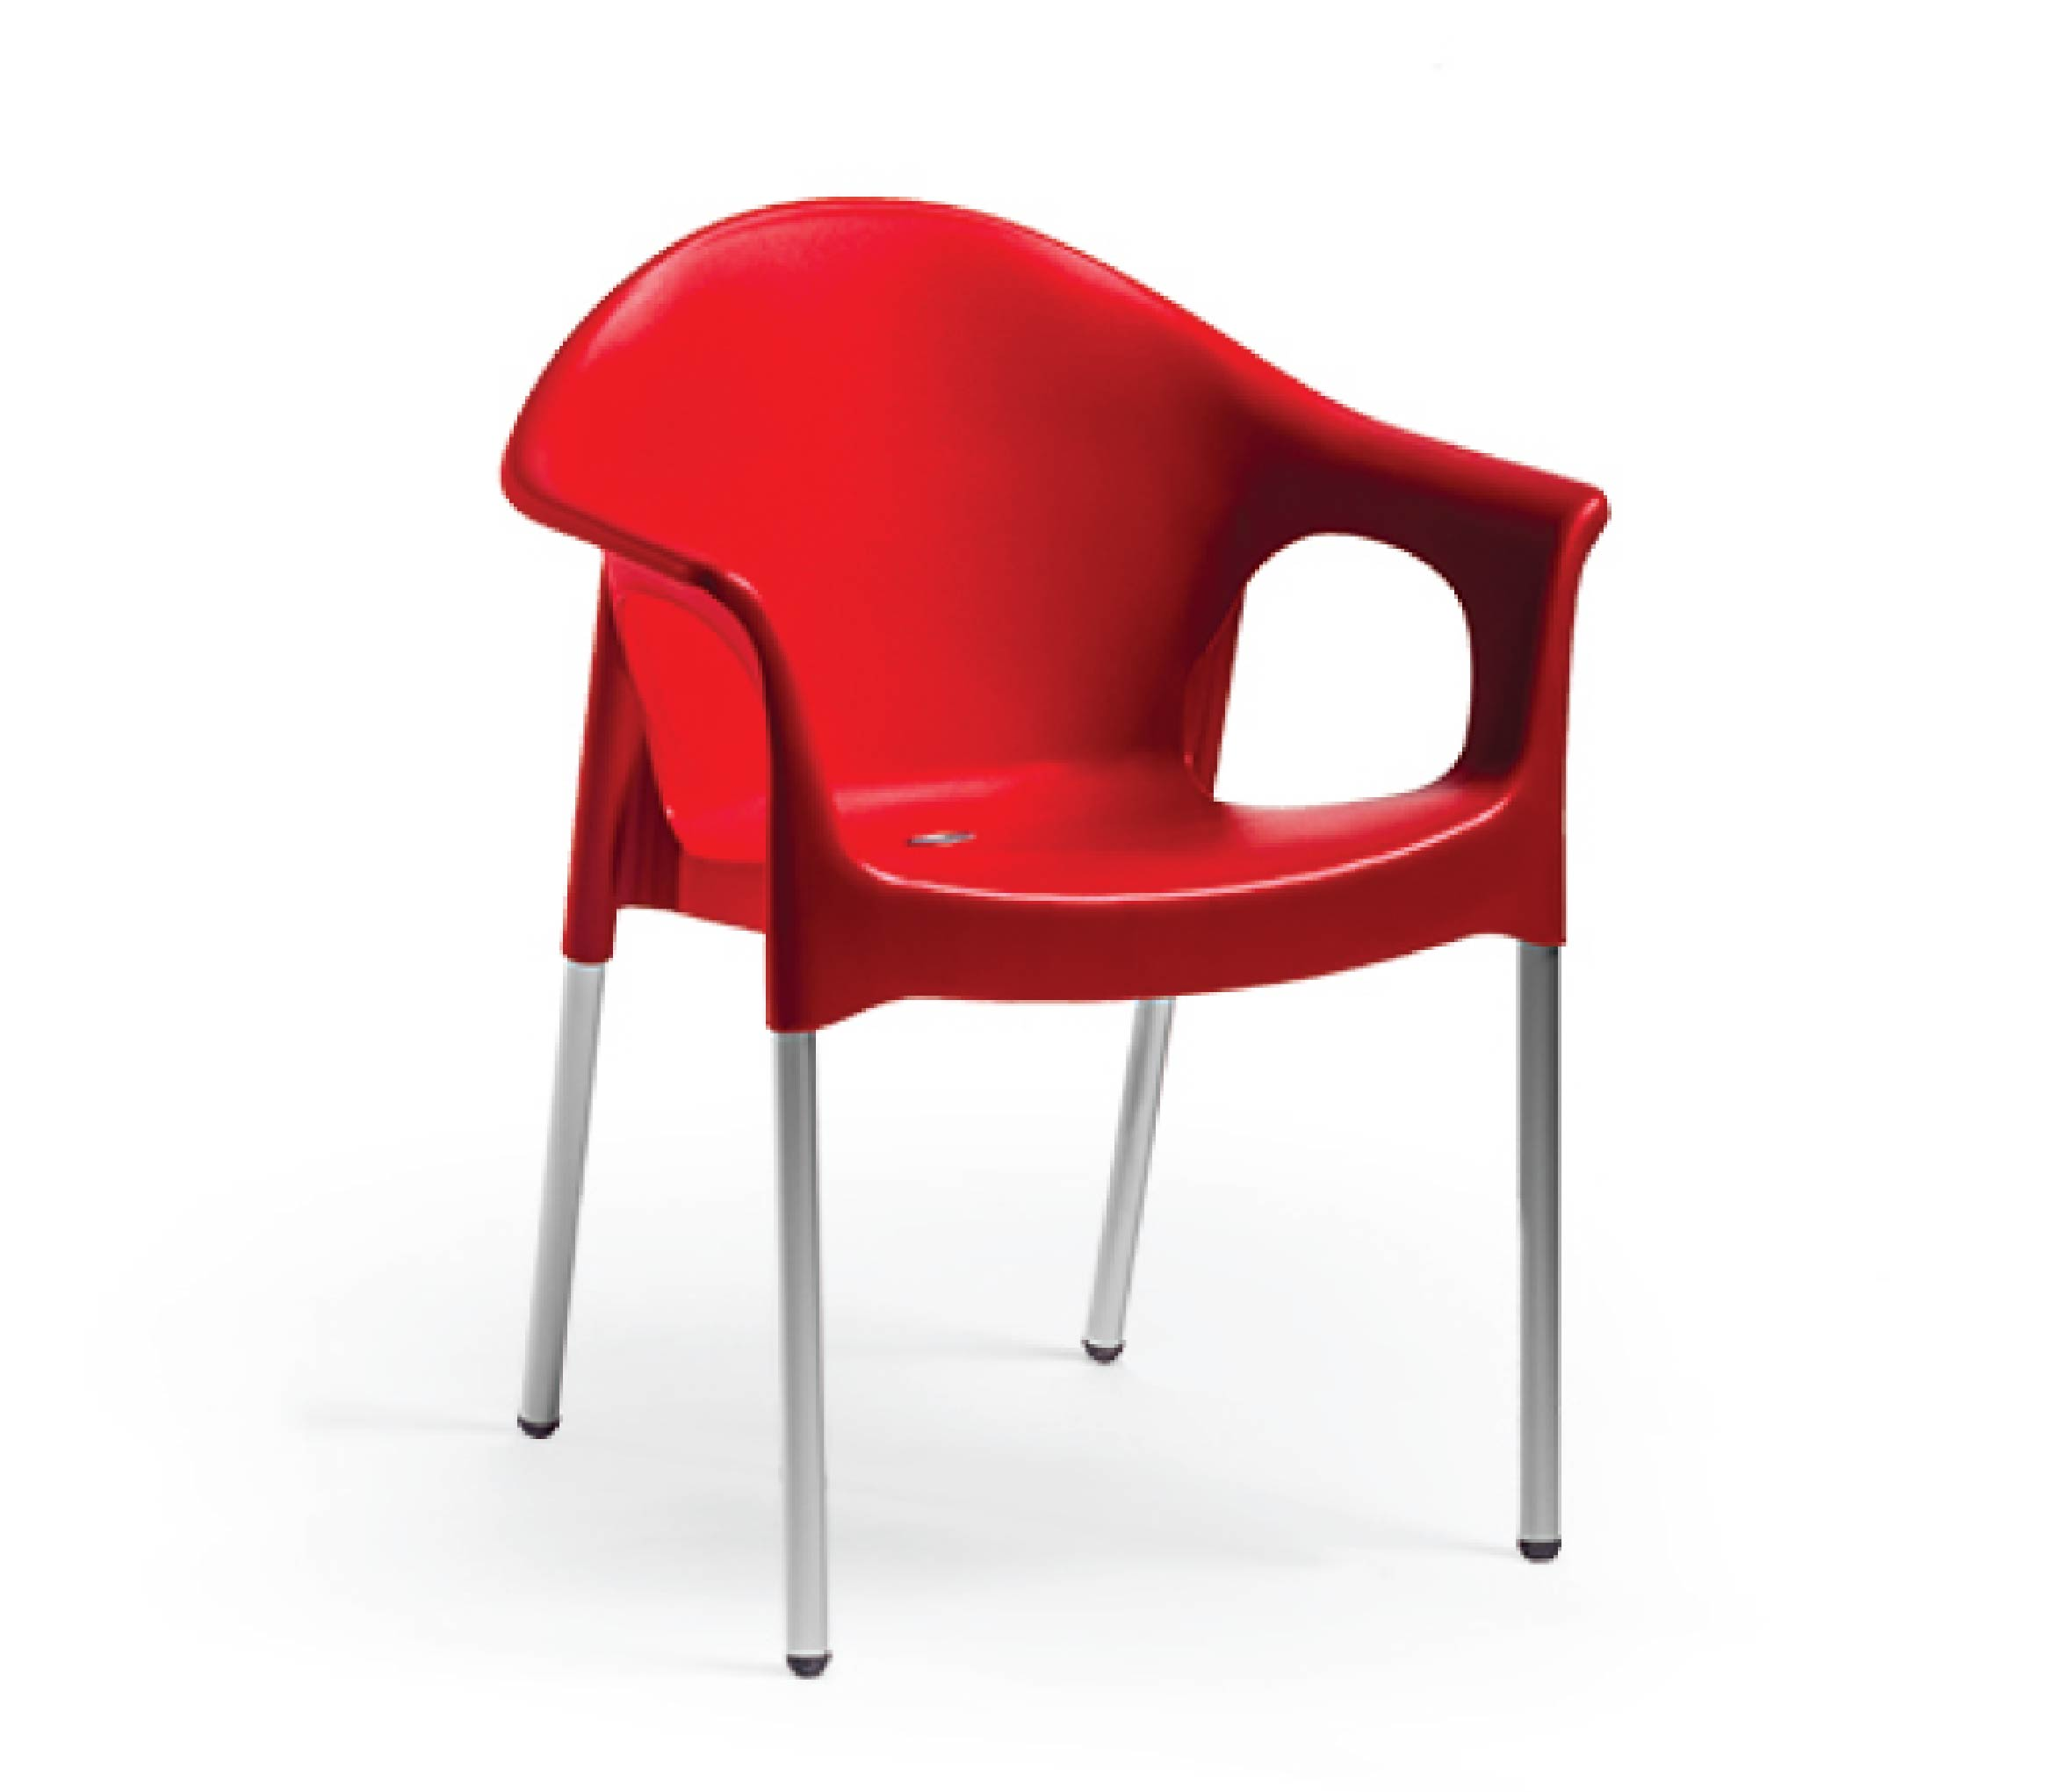 1_TENSAI_FURNITURE_LISA_RED_COLOR_PLASTIC_ARMCHAIR_white_background_400_001